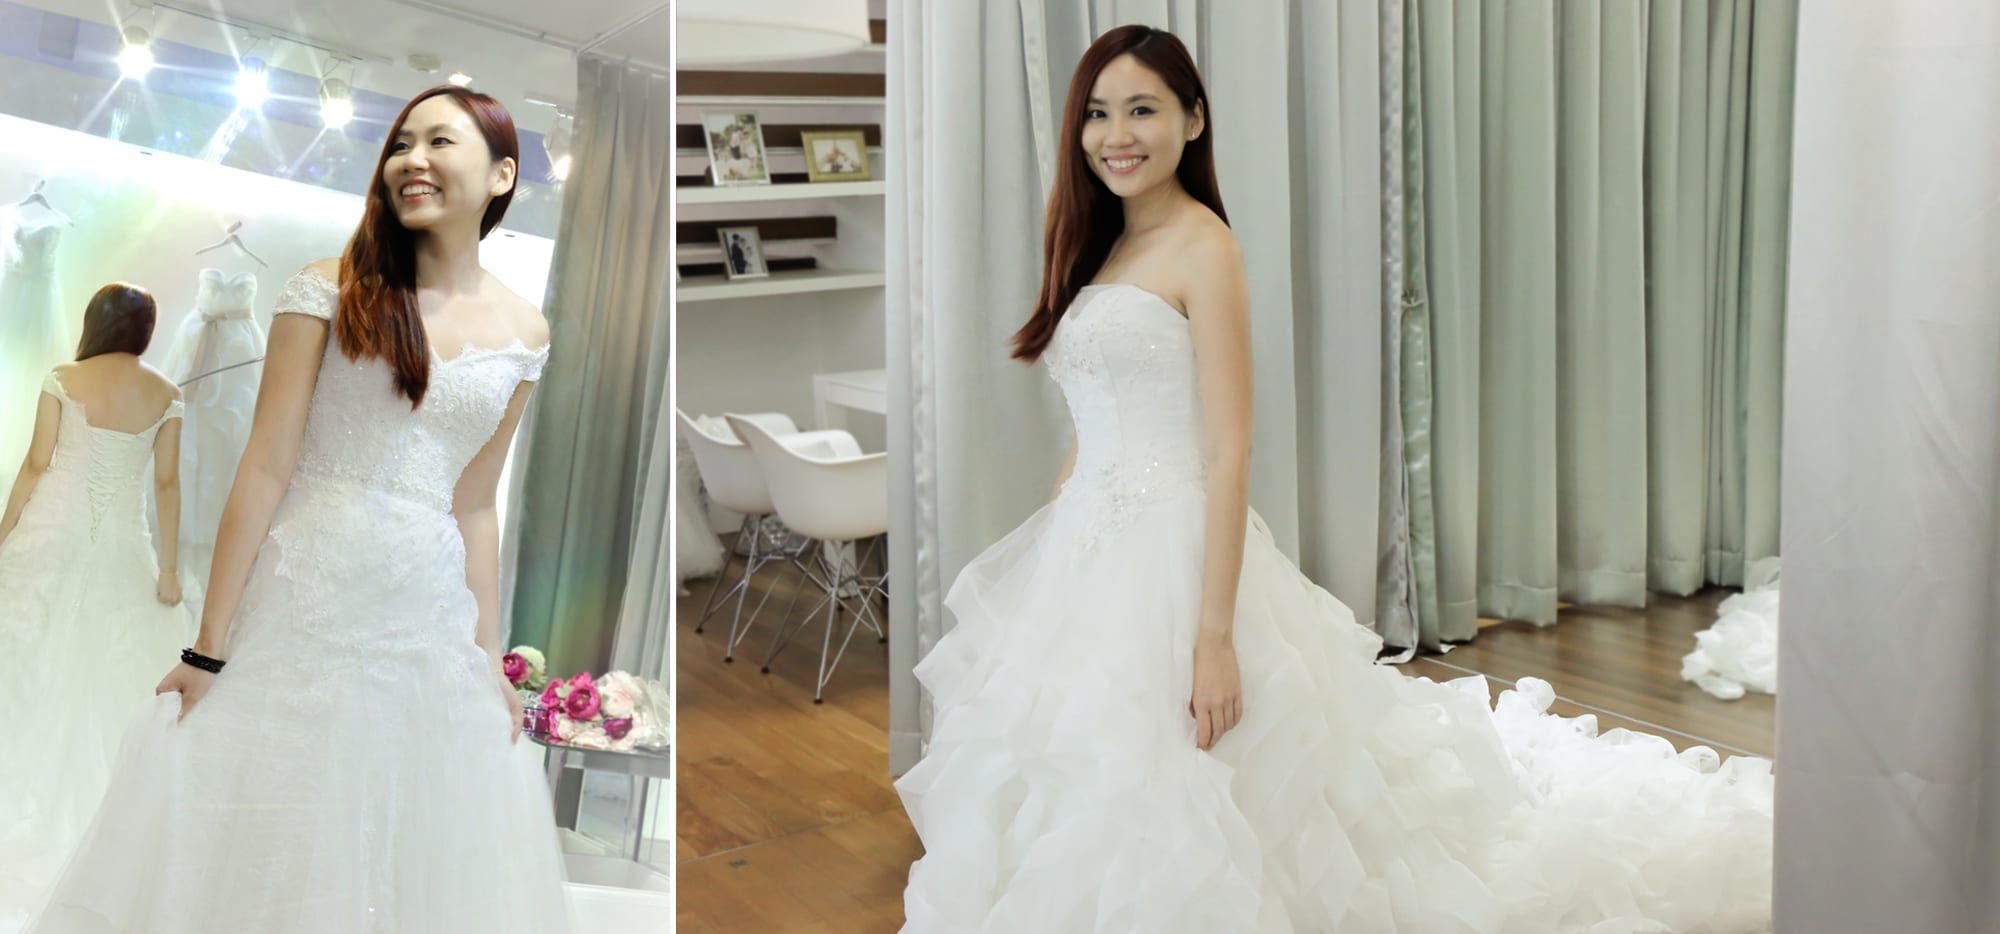 Celebrity Si Tong's Wedding Gown Fitting Experience